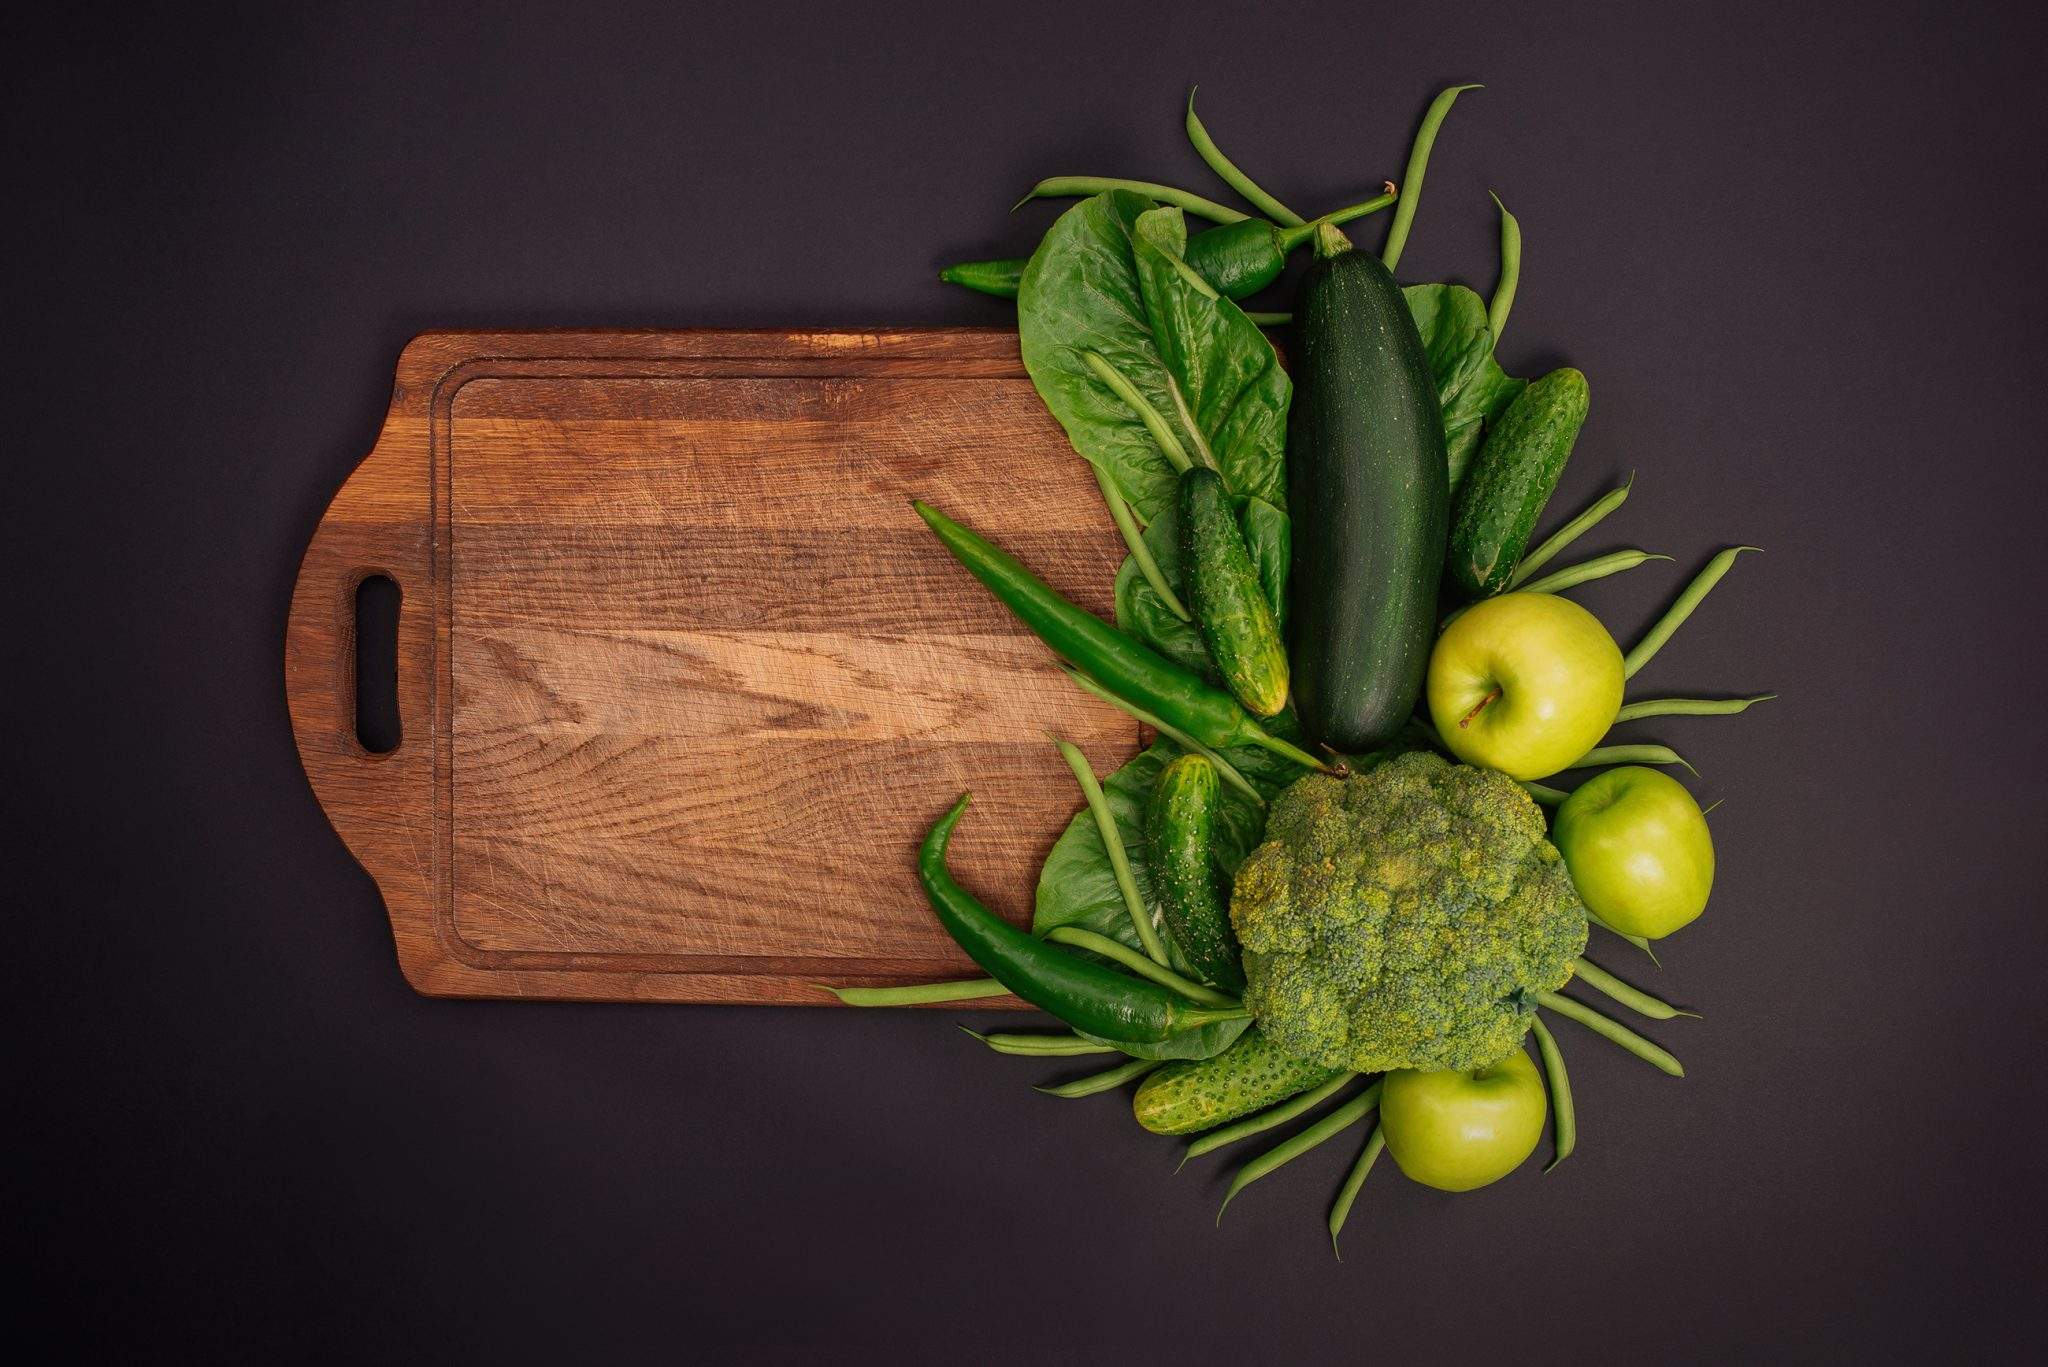 green vegetables on a black background with a board